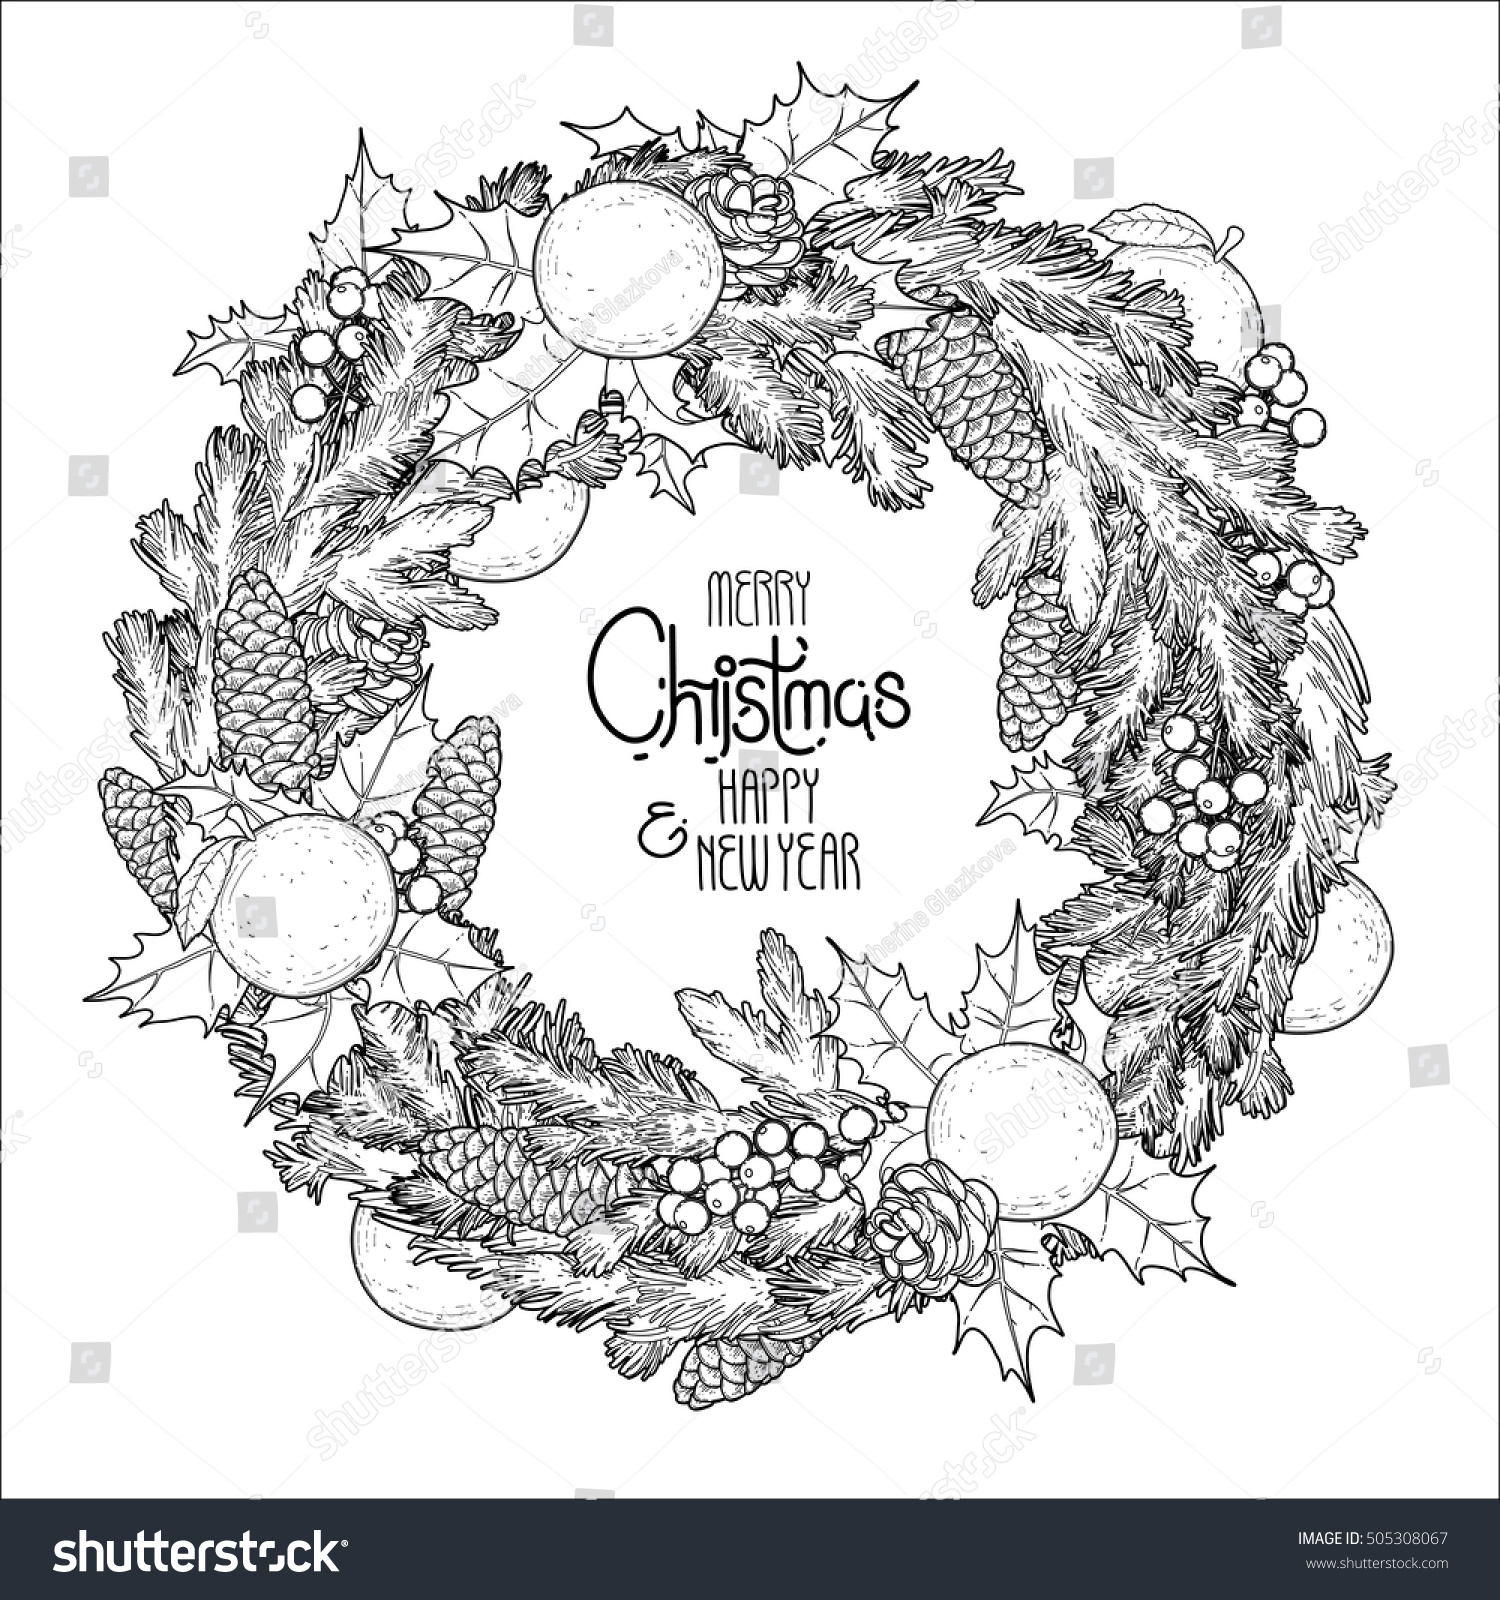 Christmas Fir Wreath Mandarins Holly Coloring Stock Vector 505308067 ...